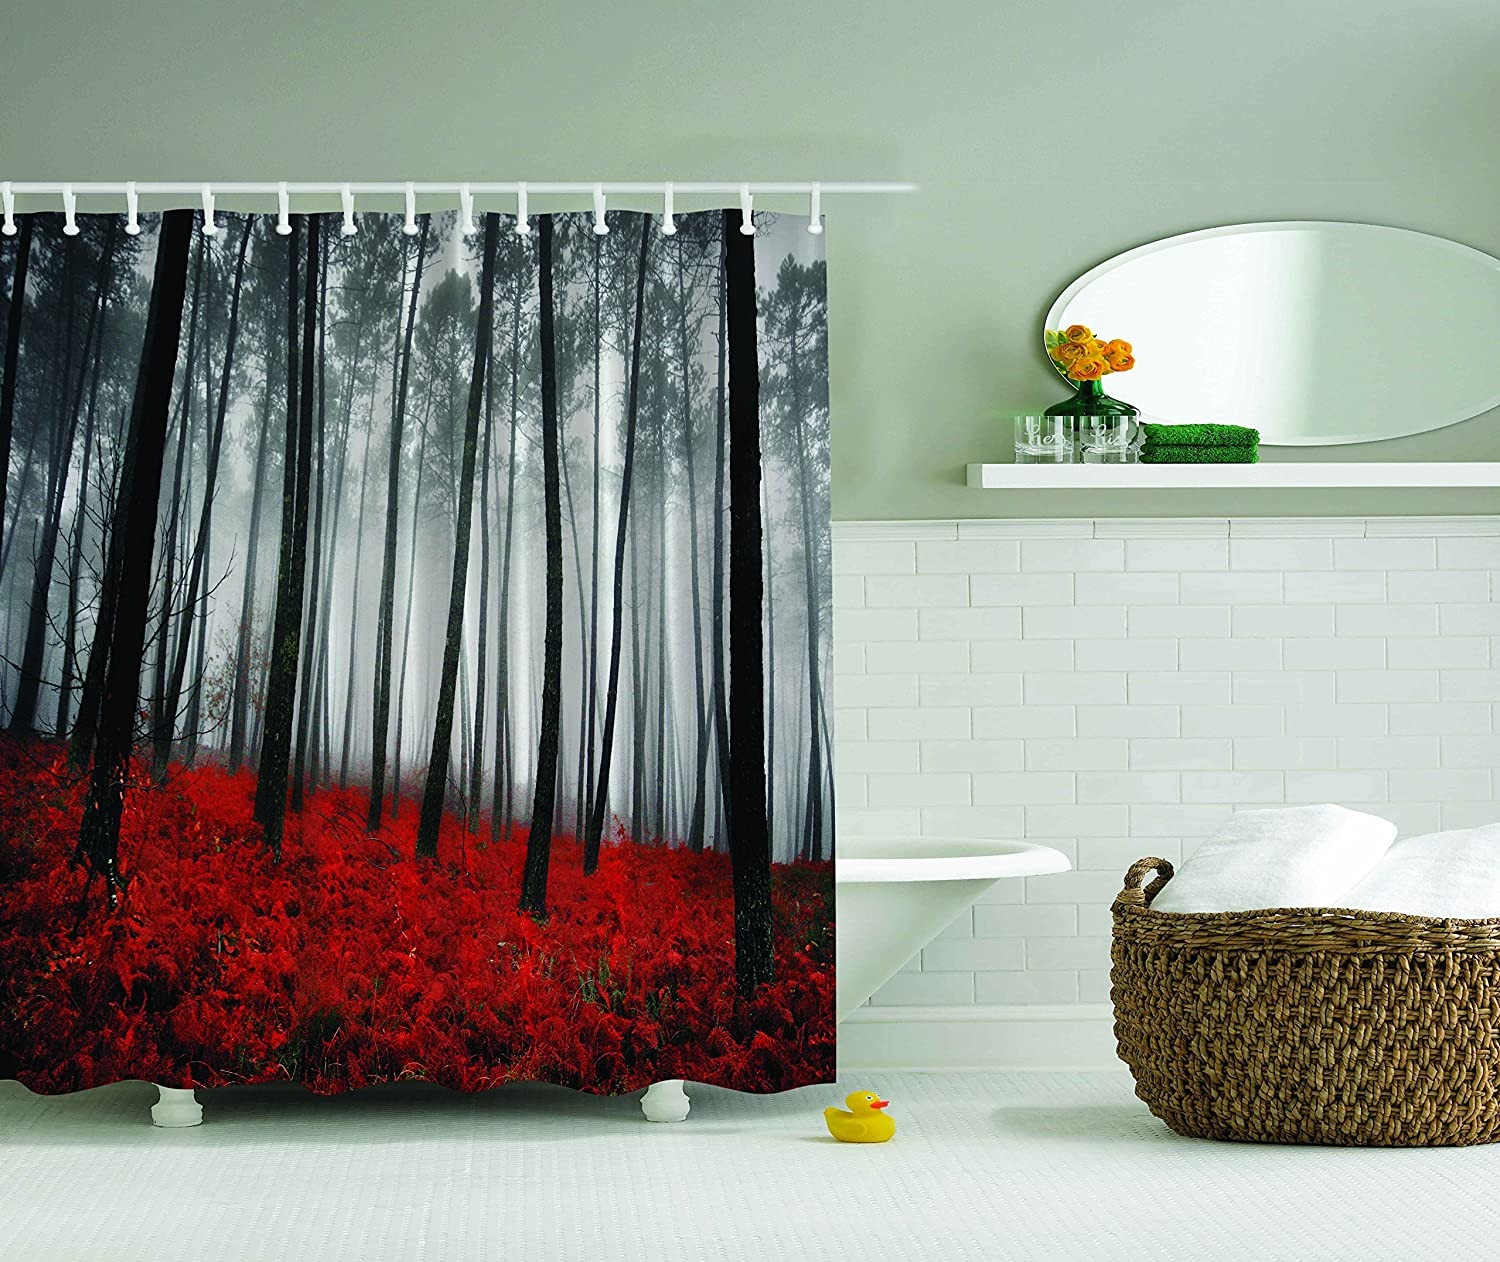 Ambesonne Fabric Shower Curtain Farmhouse Country Home Woodland Decor, Mystic Forest Trees and Leaves Red Grass Modern Art Flower Rainy Foggy Gray Scene Print, 69x70 Inches Long, Black and Gray